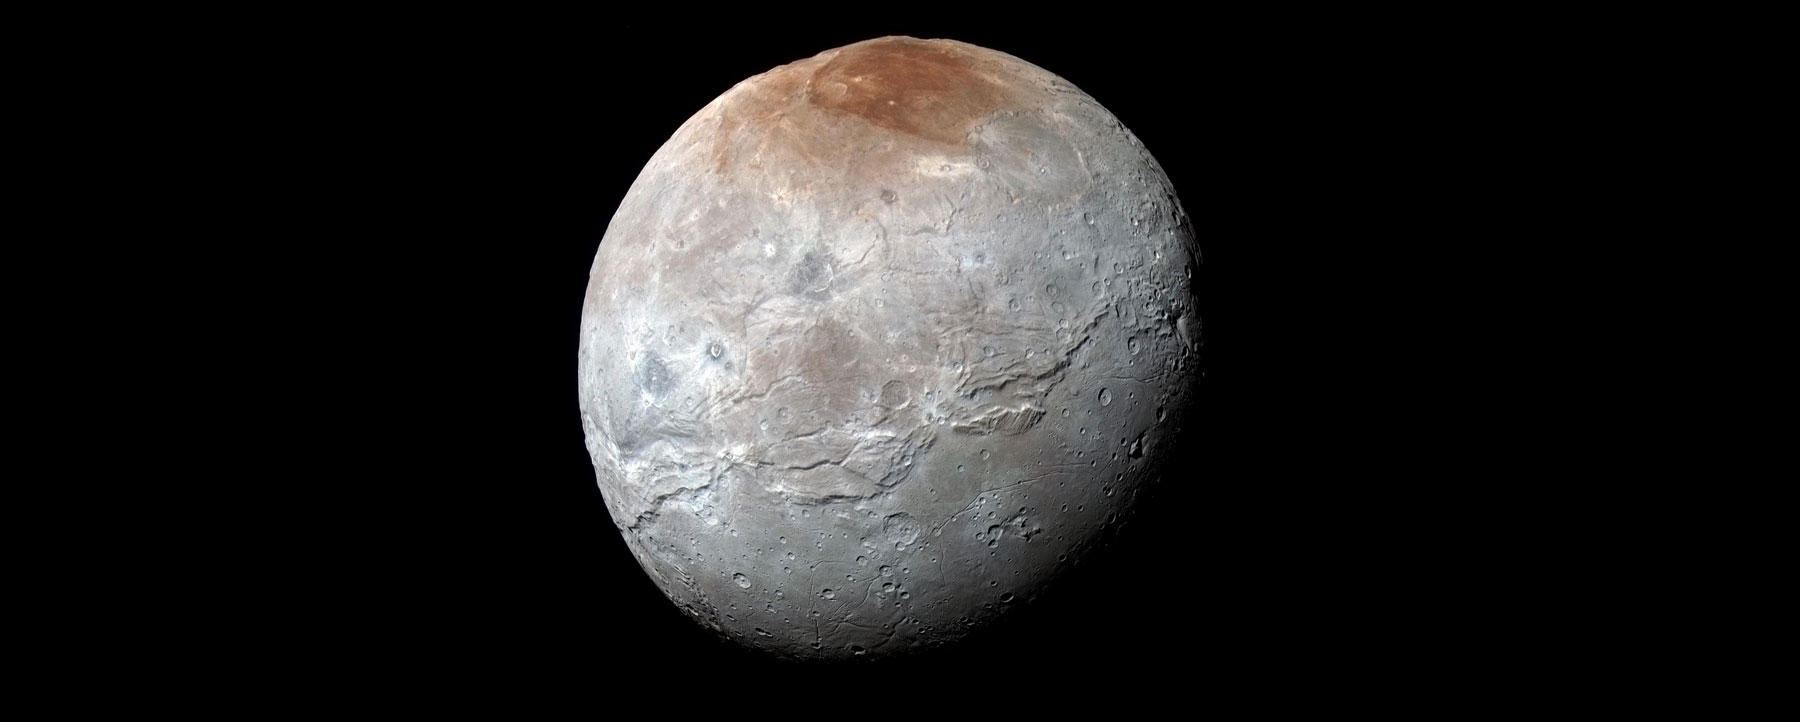 Charon Moon: Pluto's Moon Charon Is Battered, Bruised And Beautiful